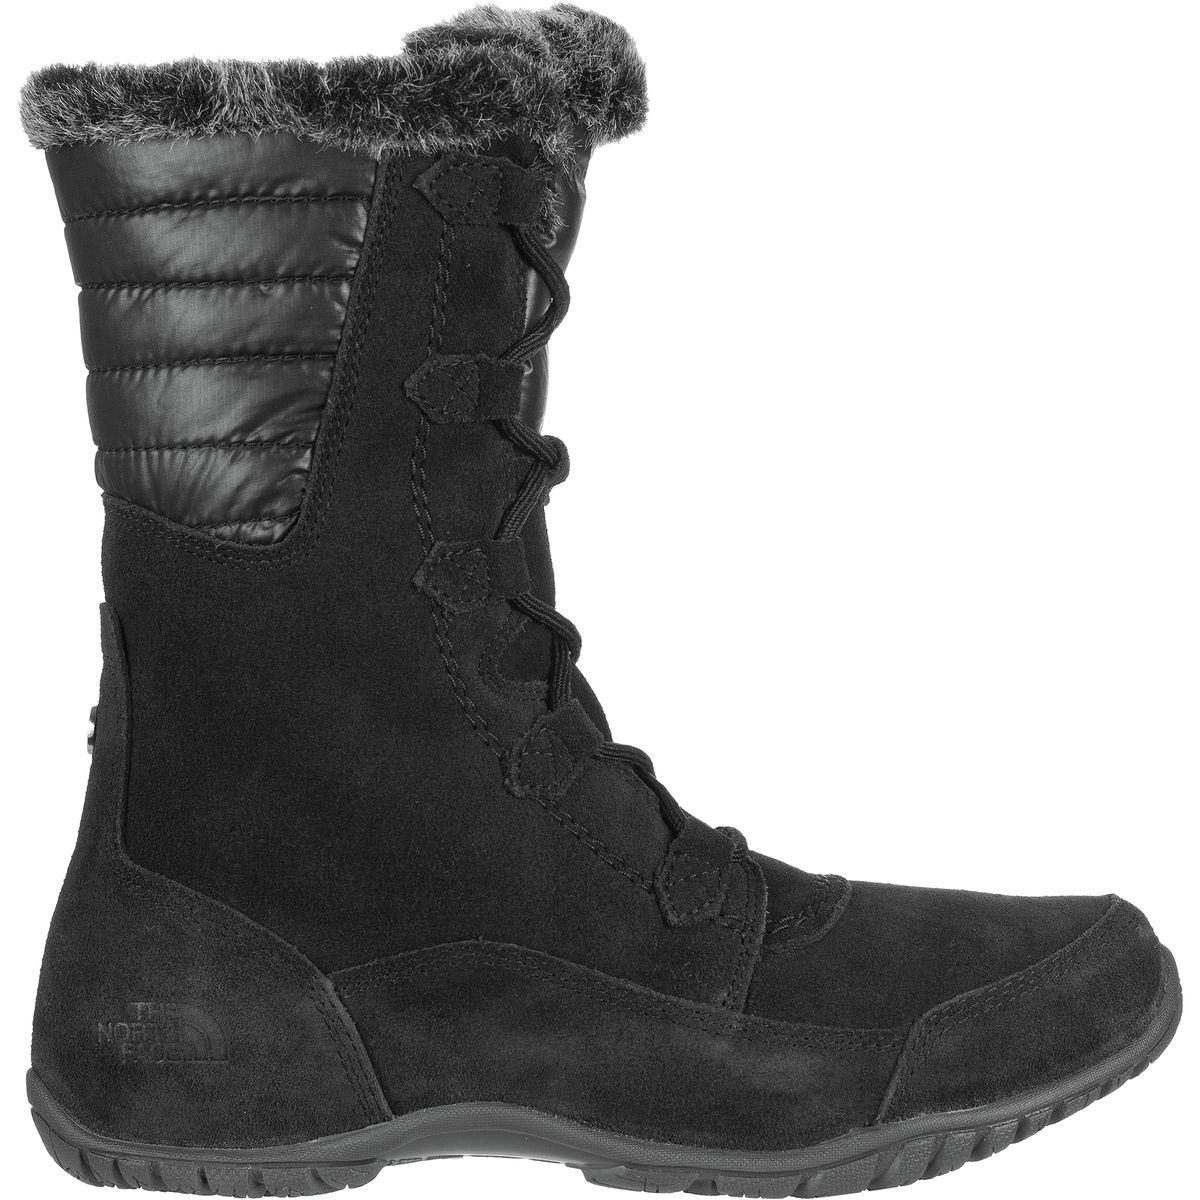 The North Face Womens Nuptse Purna II Boots